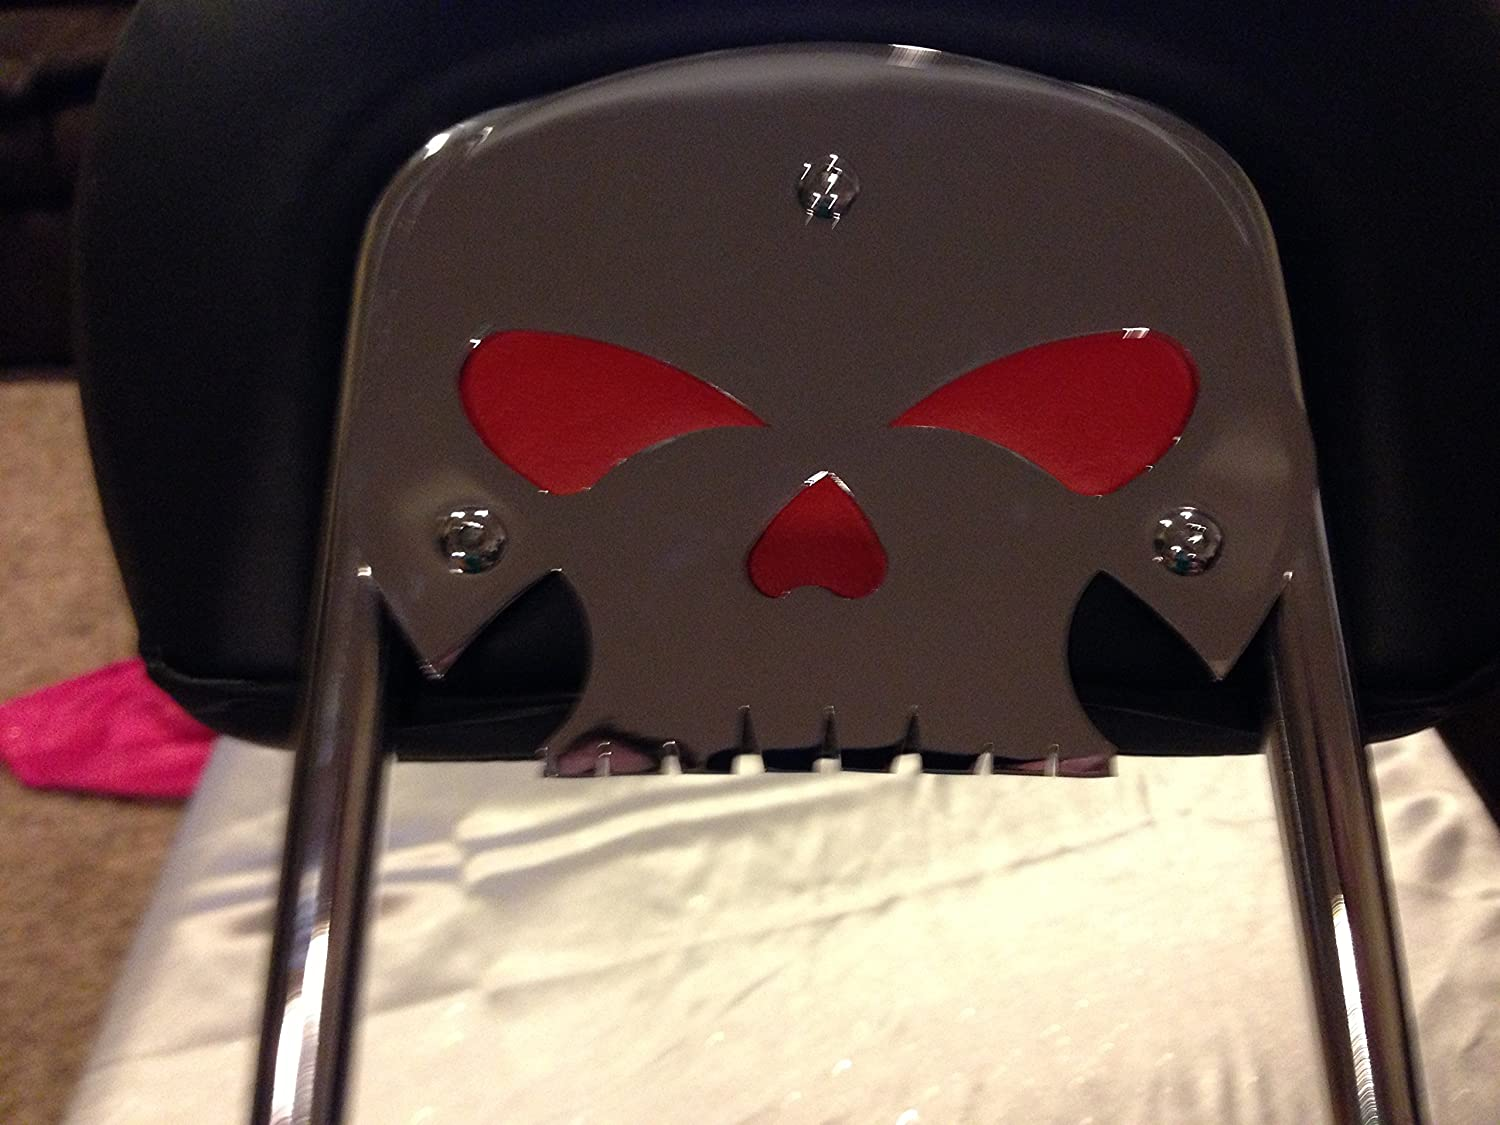 backrest not included Kustom cycle parts Harley Davidson chrome skull backrest mounting plate with red eyes fits touring bikes Road King Street Glide mounting plate only